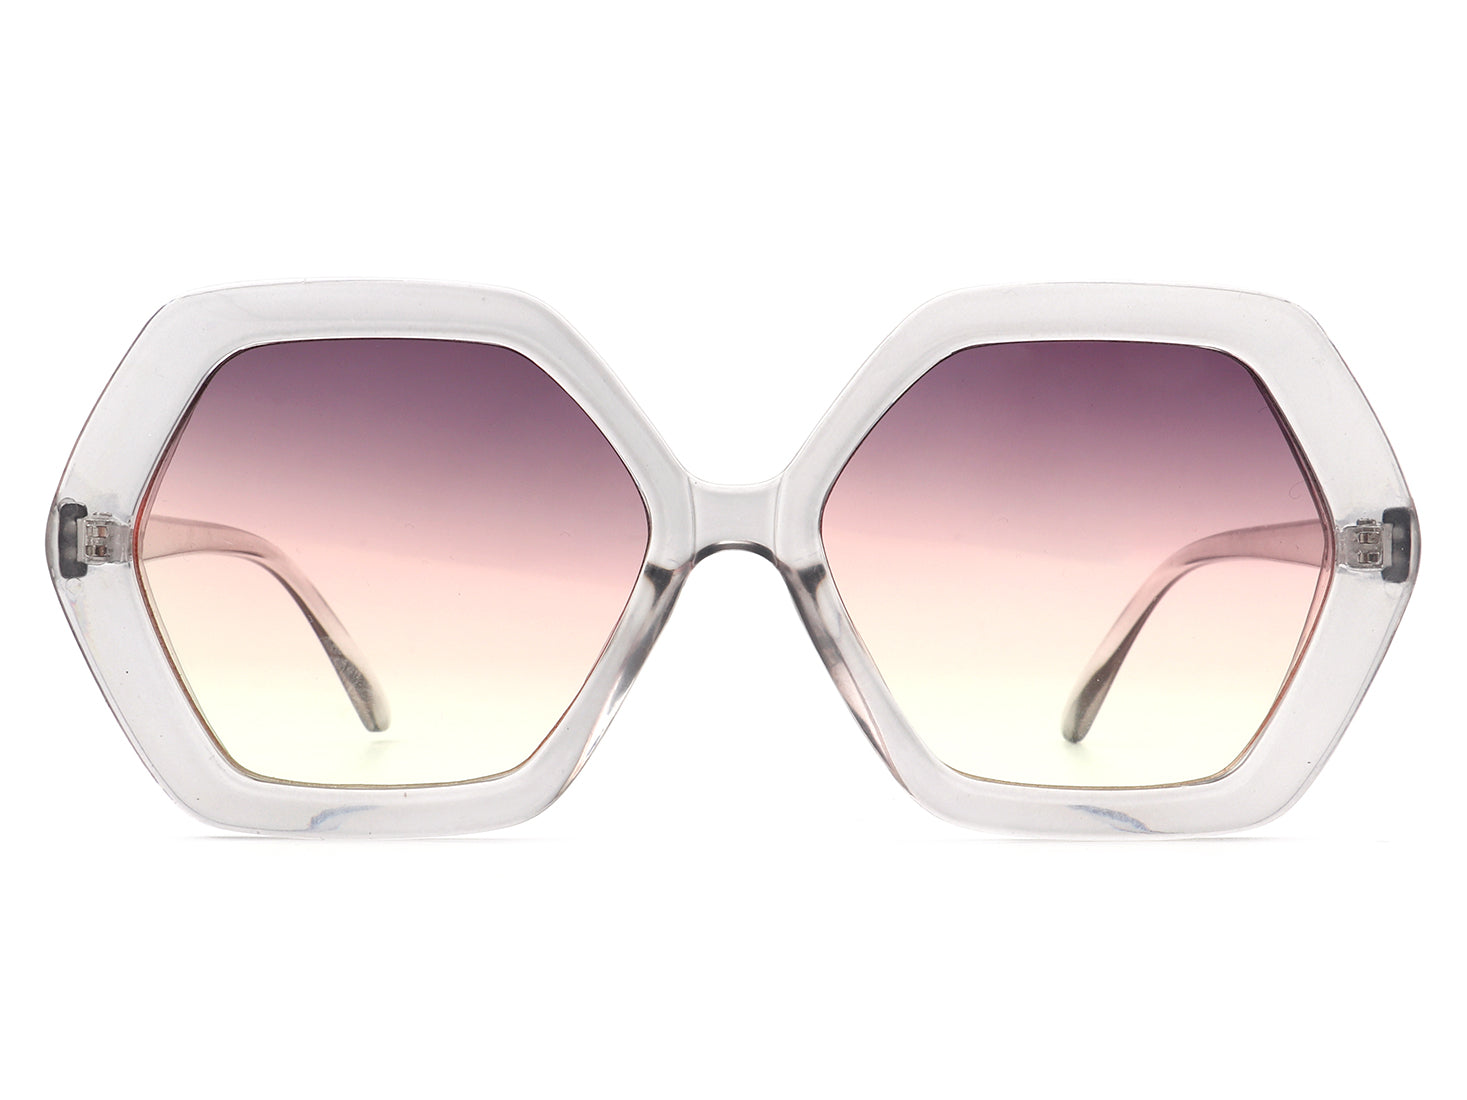 HS1019 - Square Geometric Oversize Polygon Designer Fashion Sunglasses